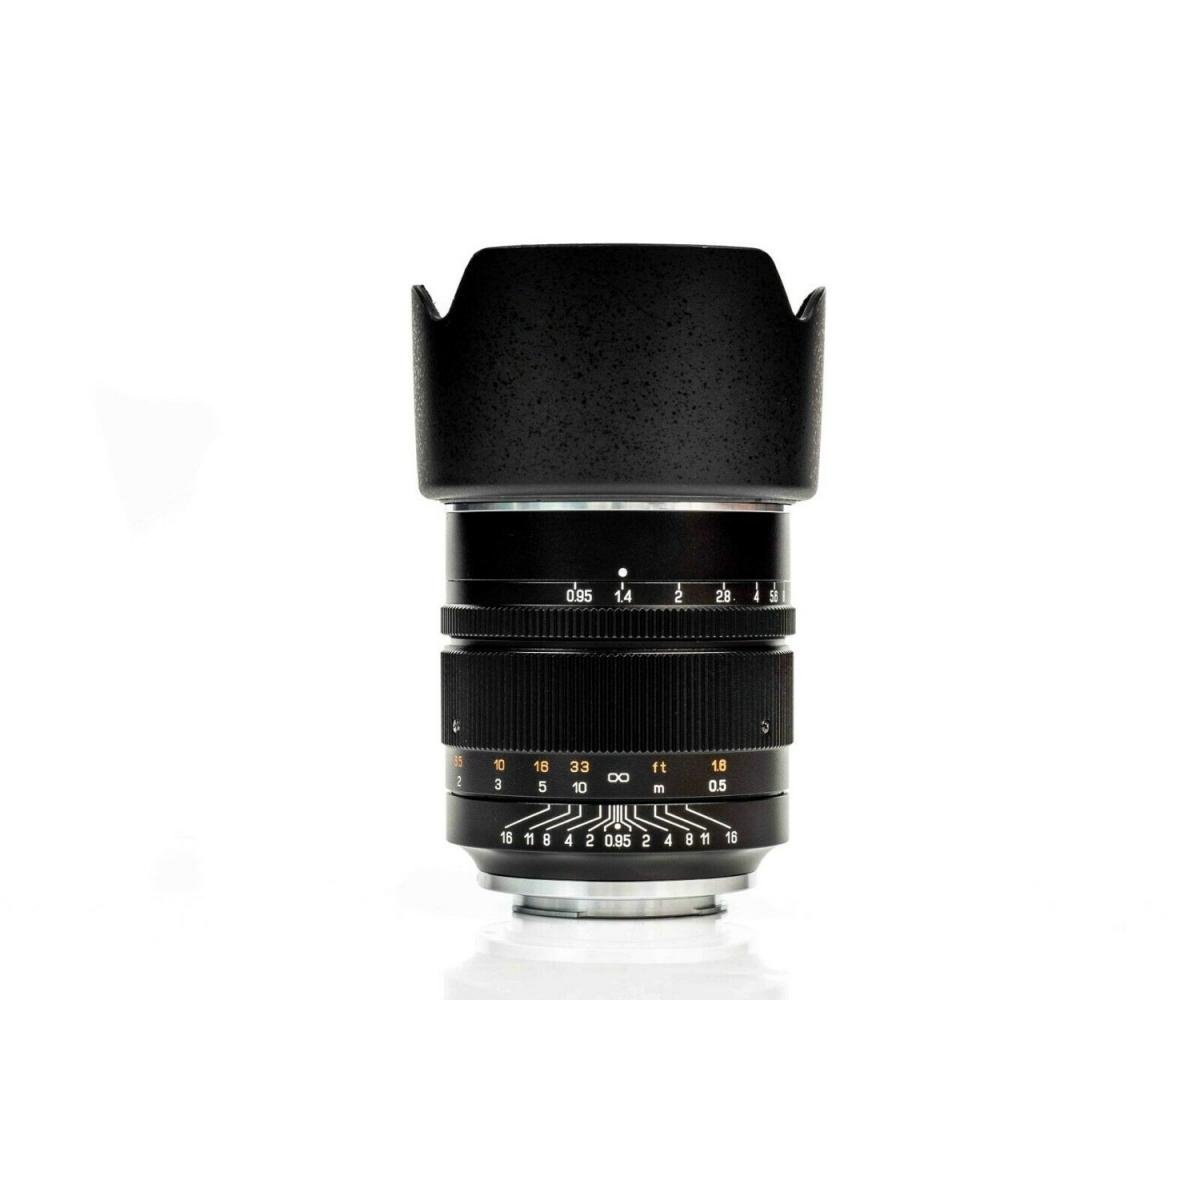 Zhongyi Mitakon Speedmaster 50mm f/0.95 ver III Lens for Nikon Z Mount - Black